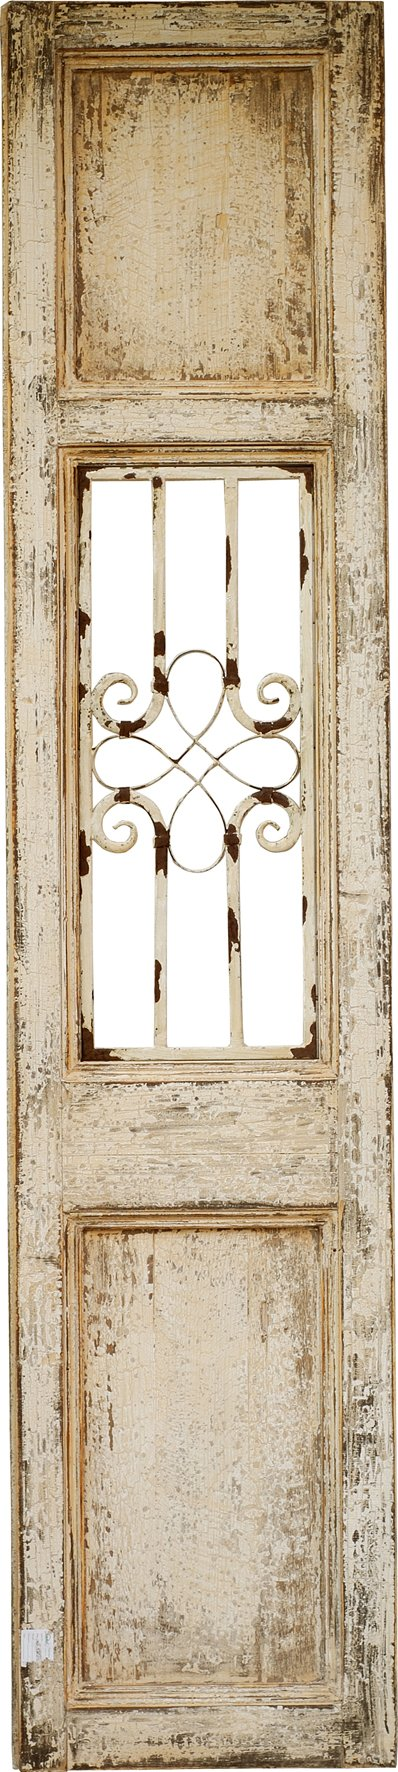 A&B Home 88520 Adela French Country Decorative Wood Panel, 19 by 87-Inch